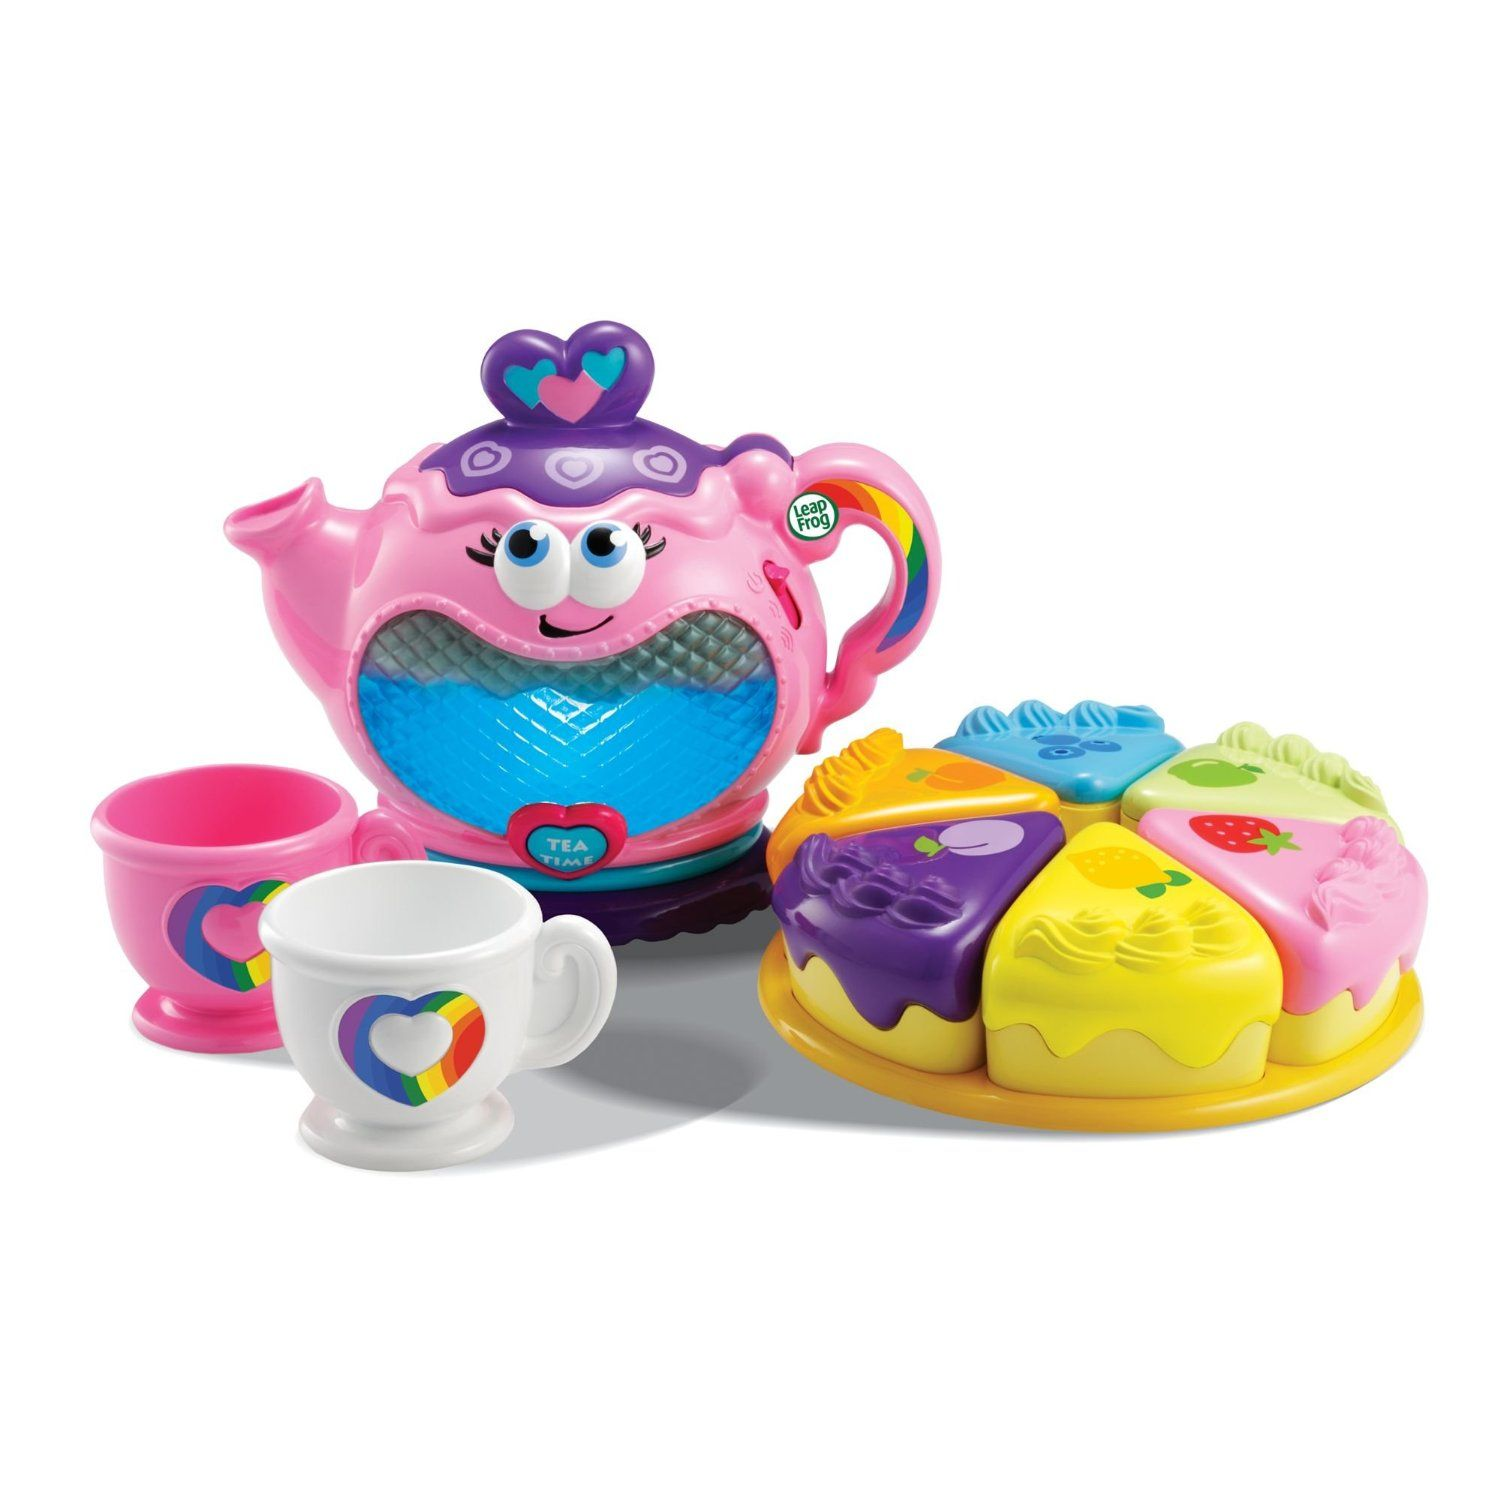 The Illuminating LeapFrog Musical Rainbow Tea Party Set